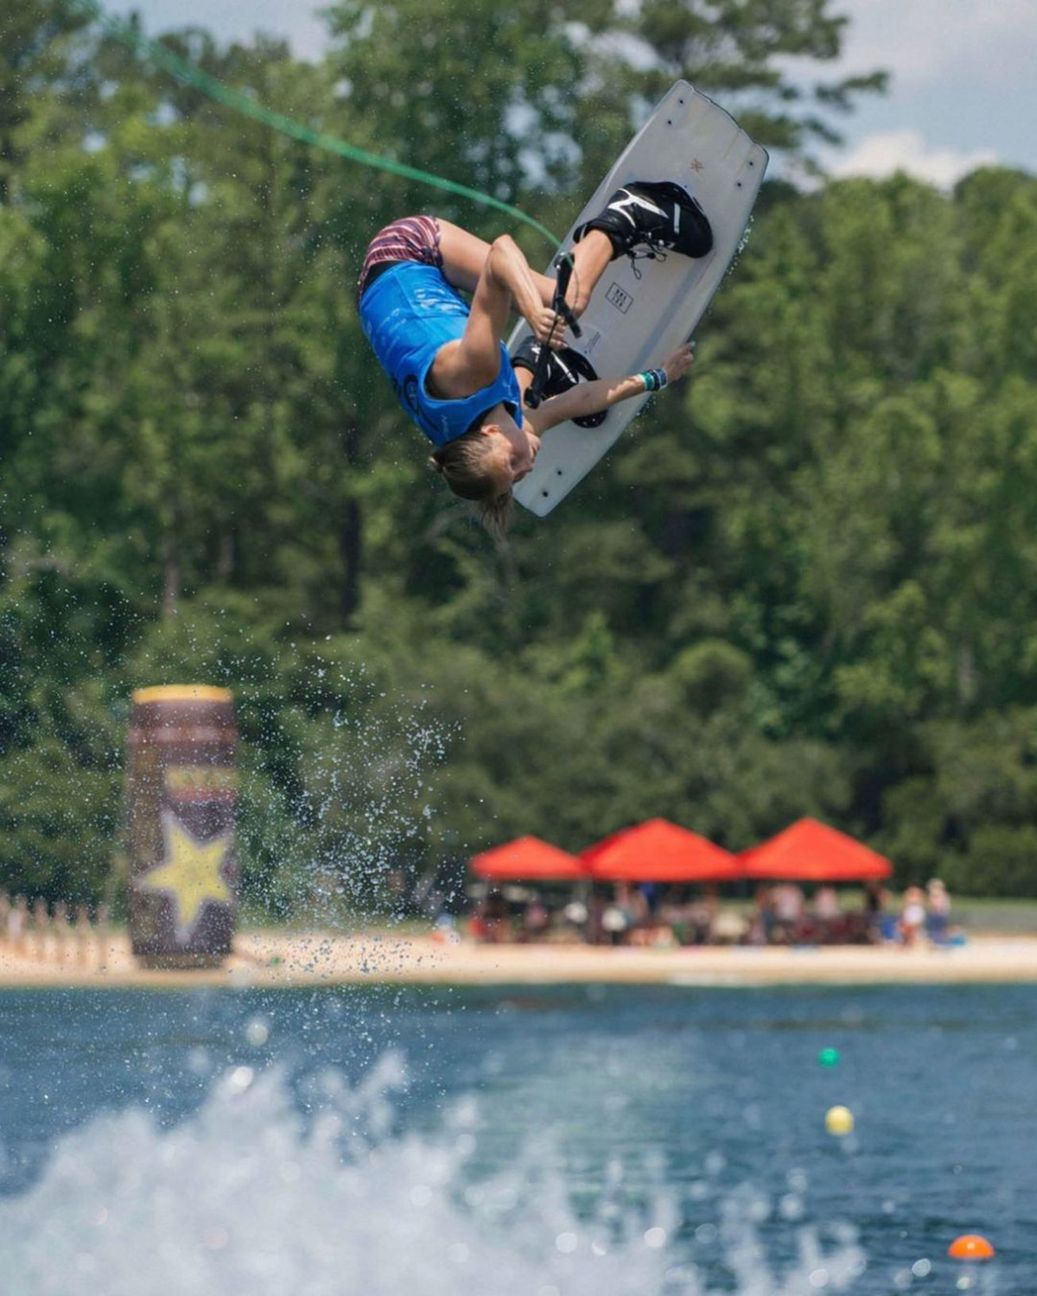 Mary Morgan Howell getting some air-time on her Wakeboard